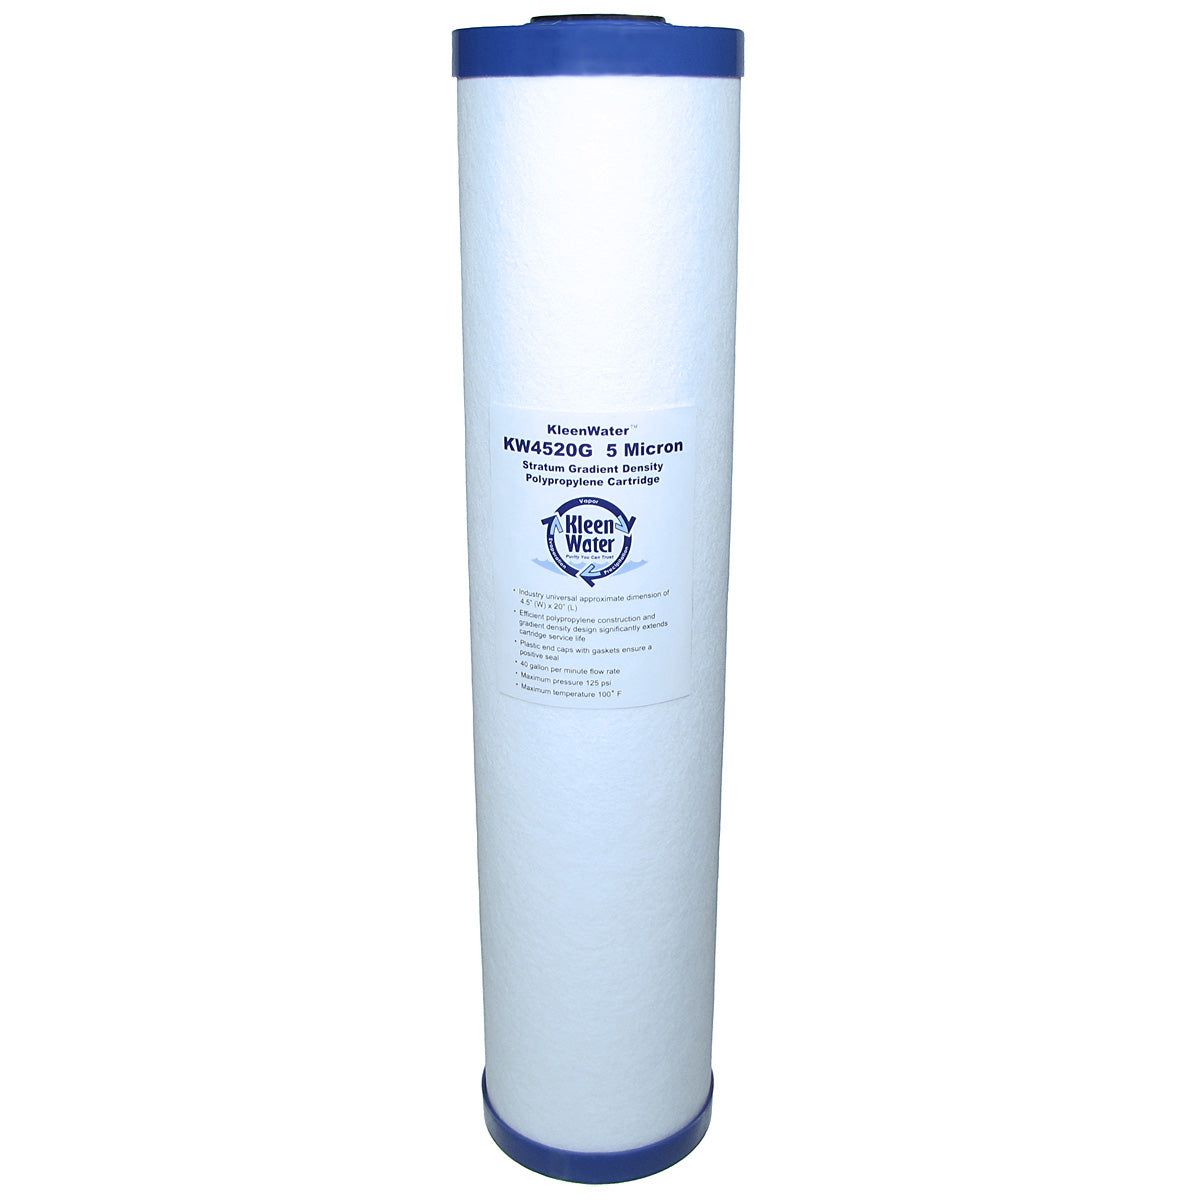 Dirt Rust Sediment Water Filter Cartridge - 5 Micron - 4.5 x 20 Inch